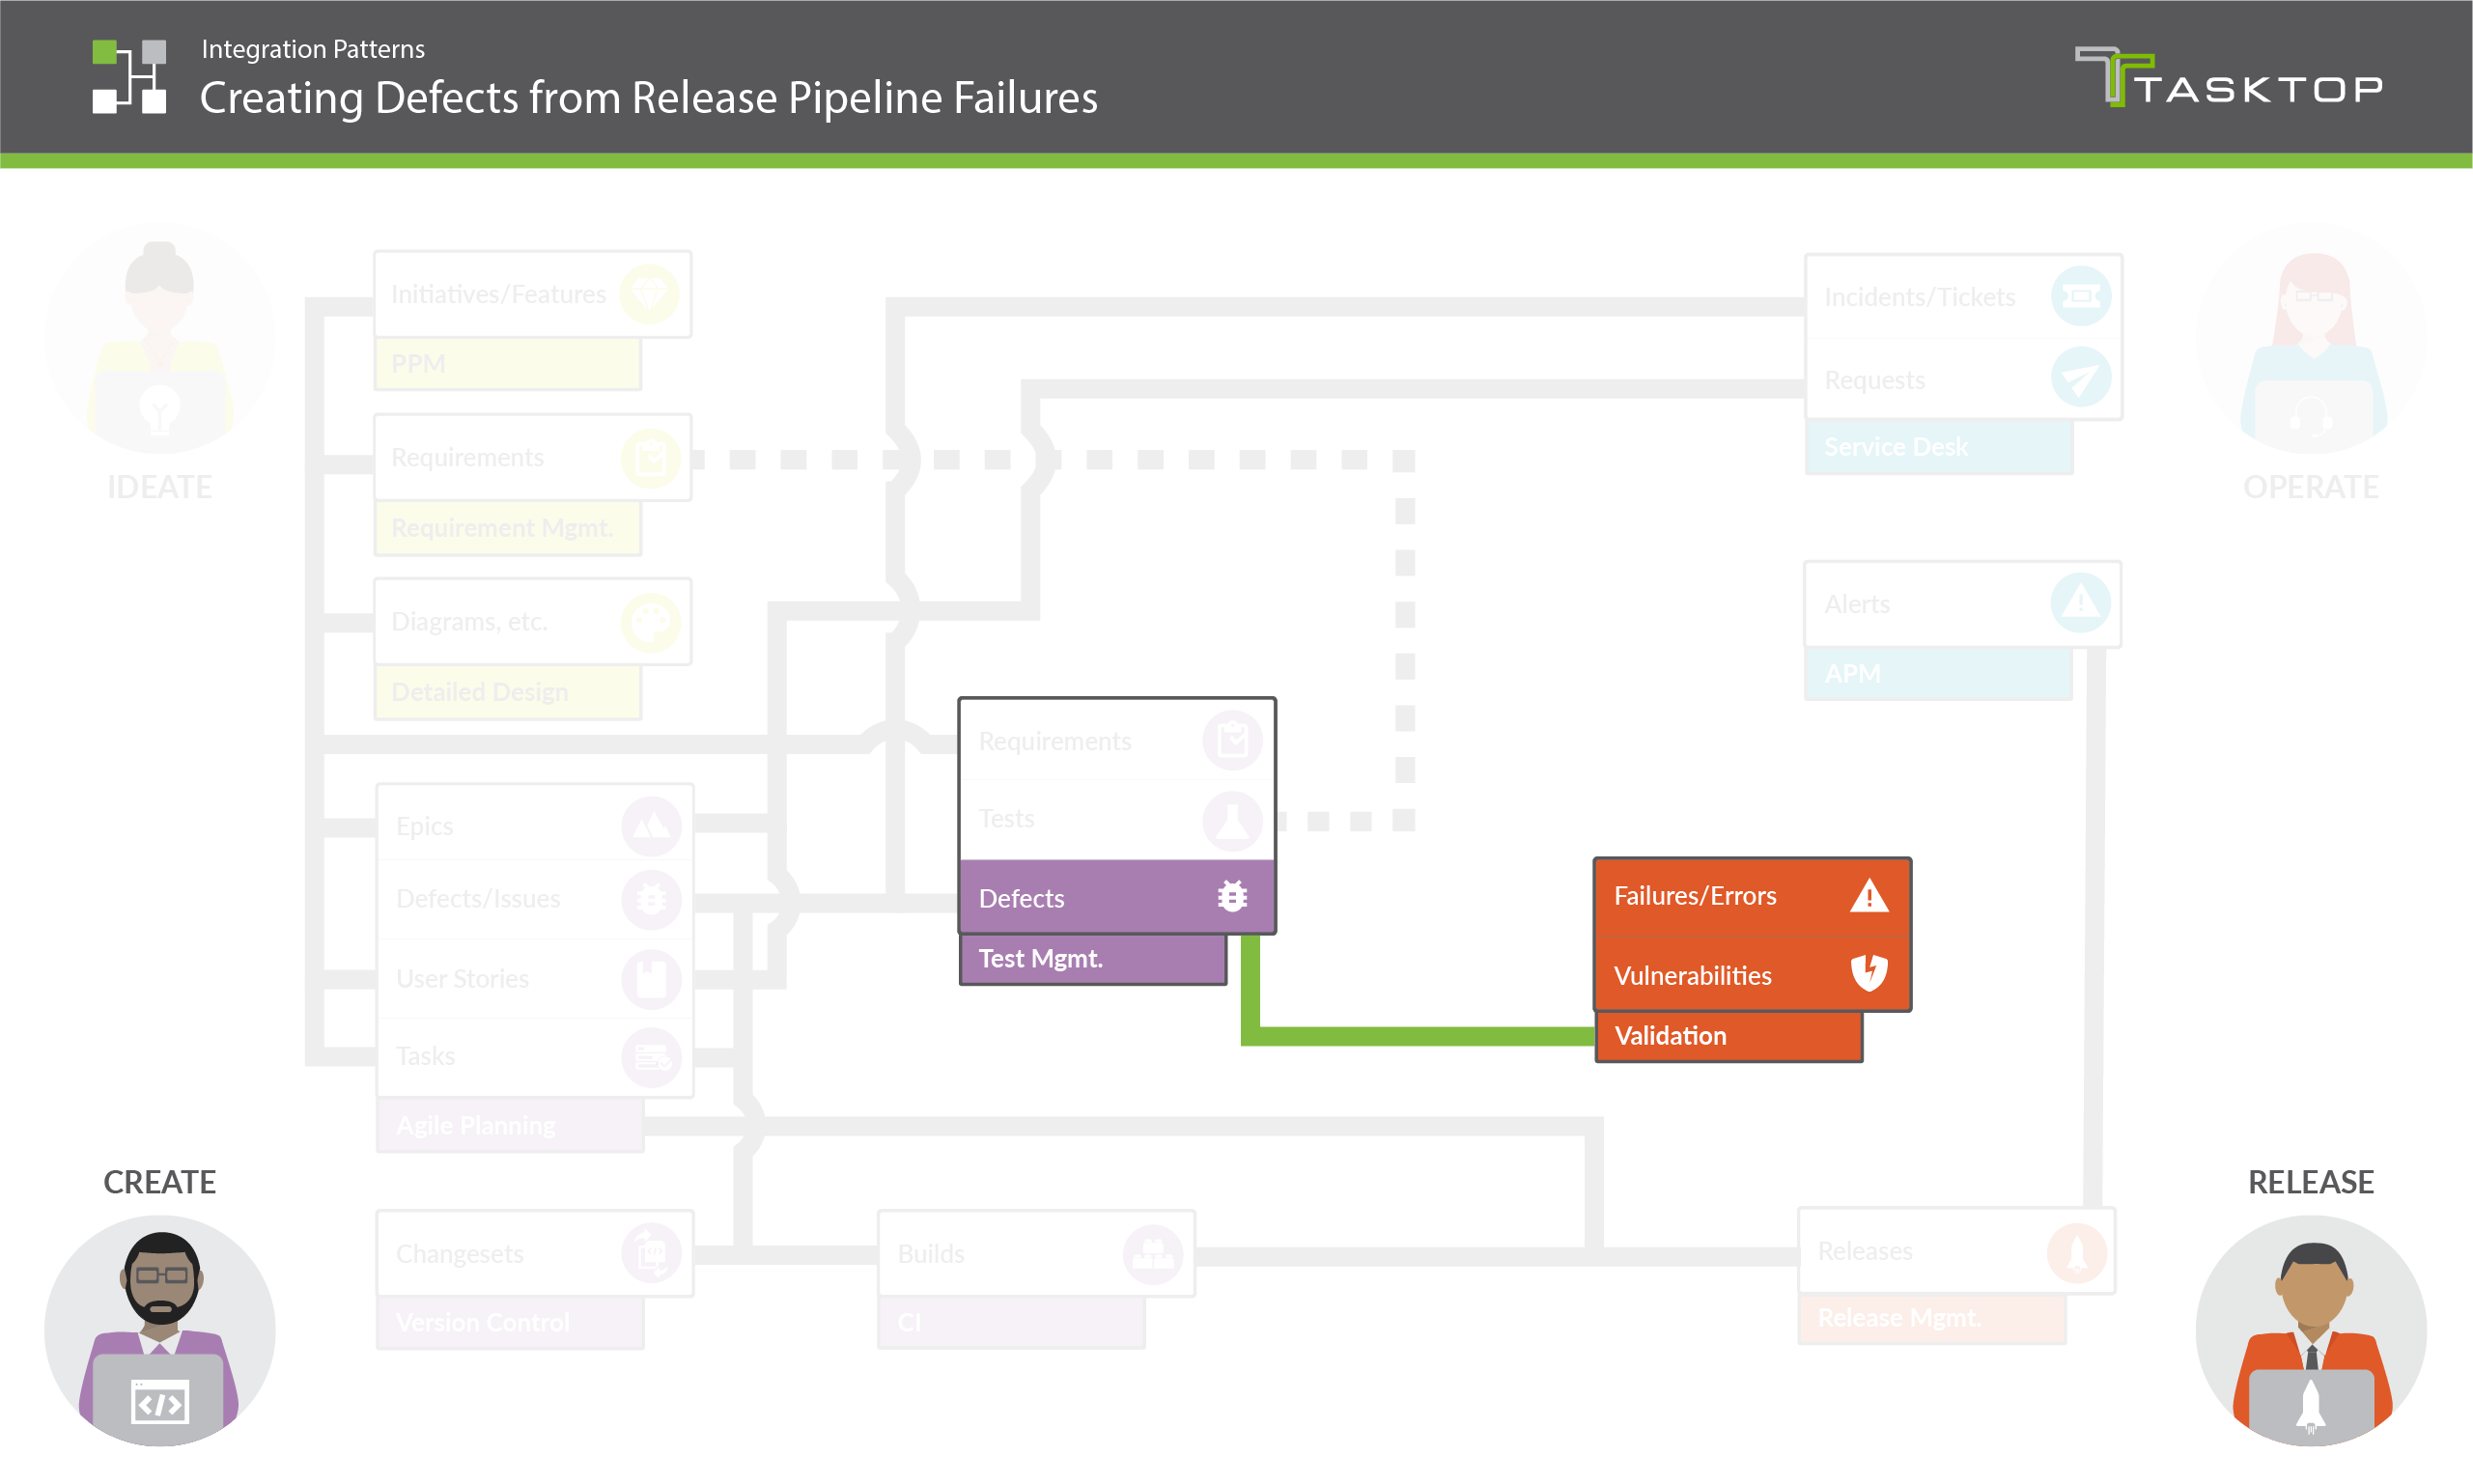 Integration Pattern Creating Defects from Release Pipeline Failures